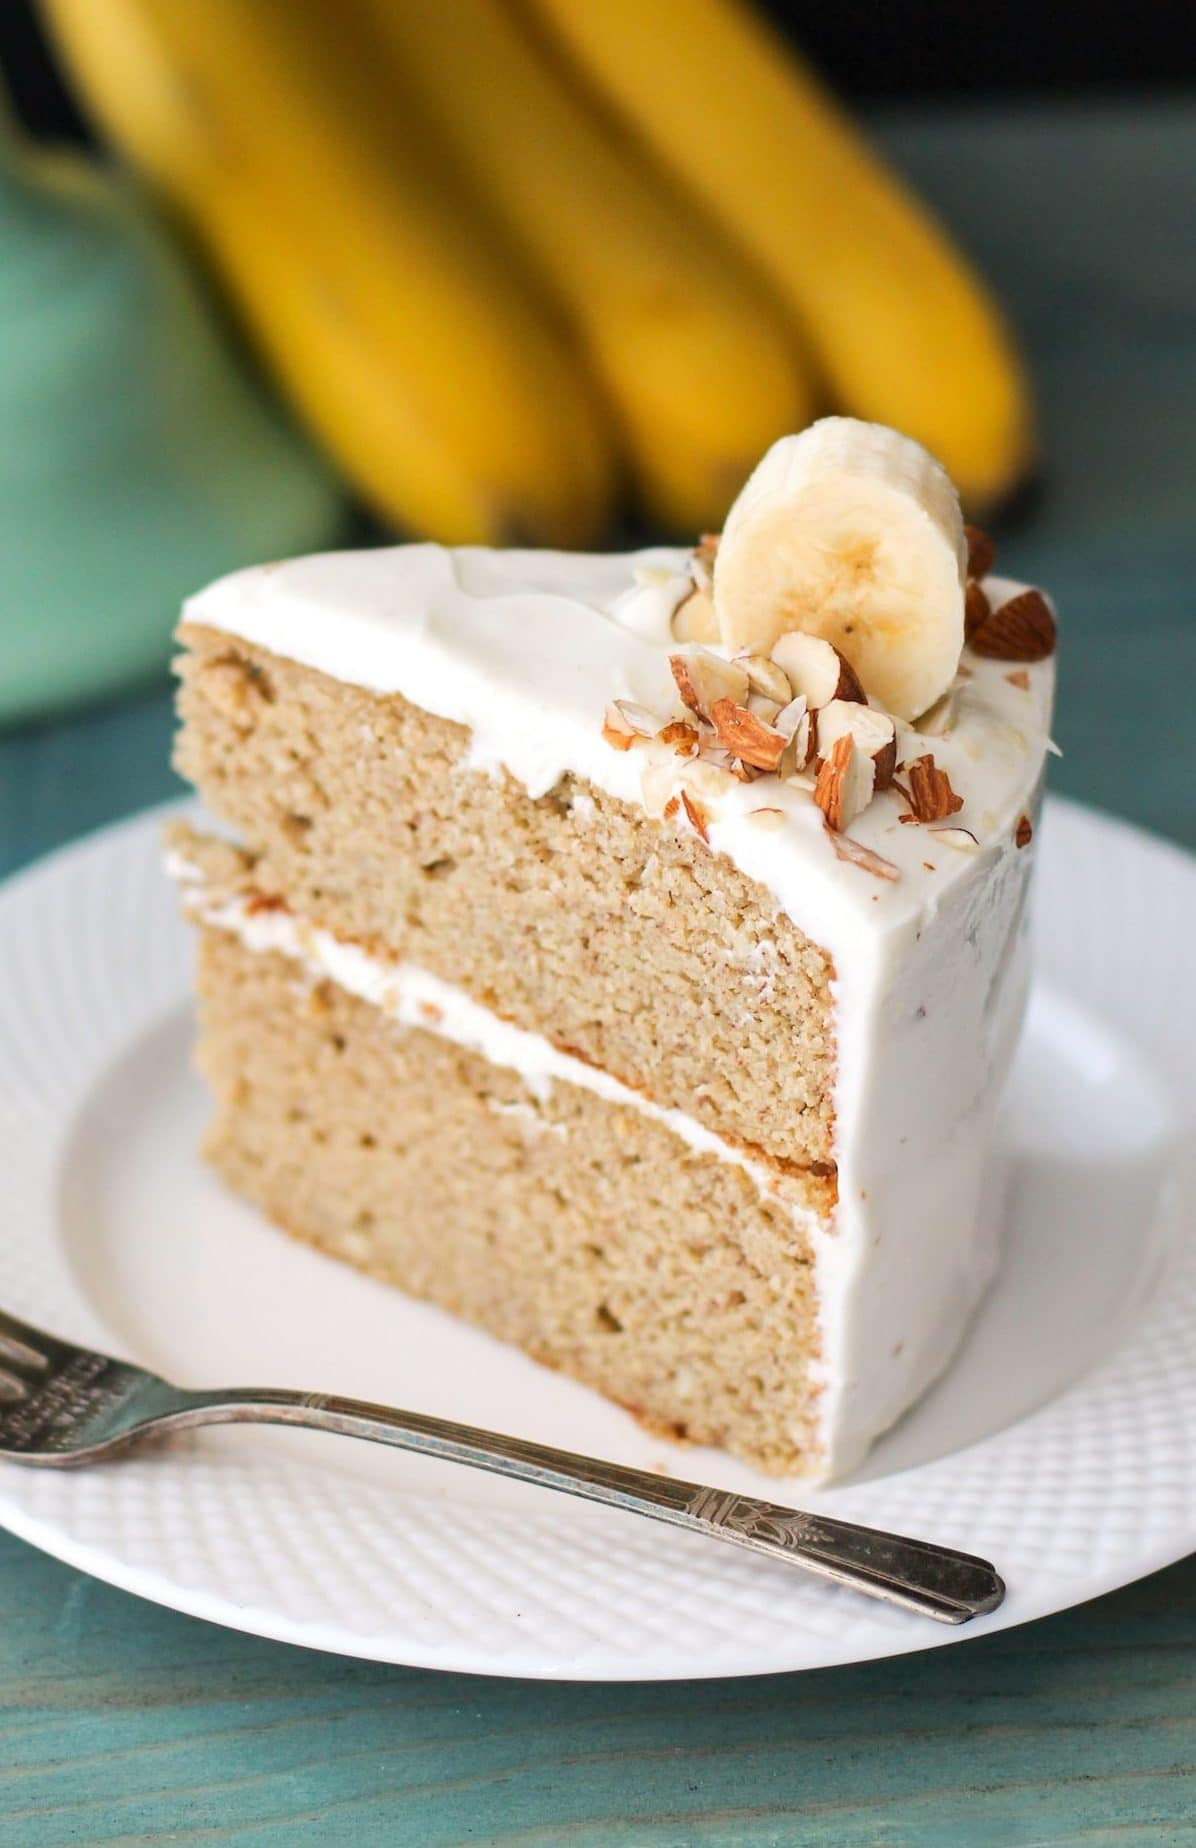 Gluten Free Healthy Banana Cake With Cream Cheese Frosting